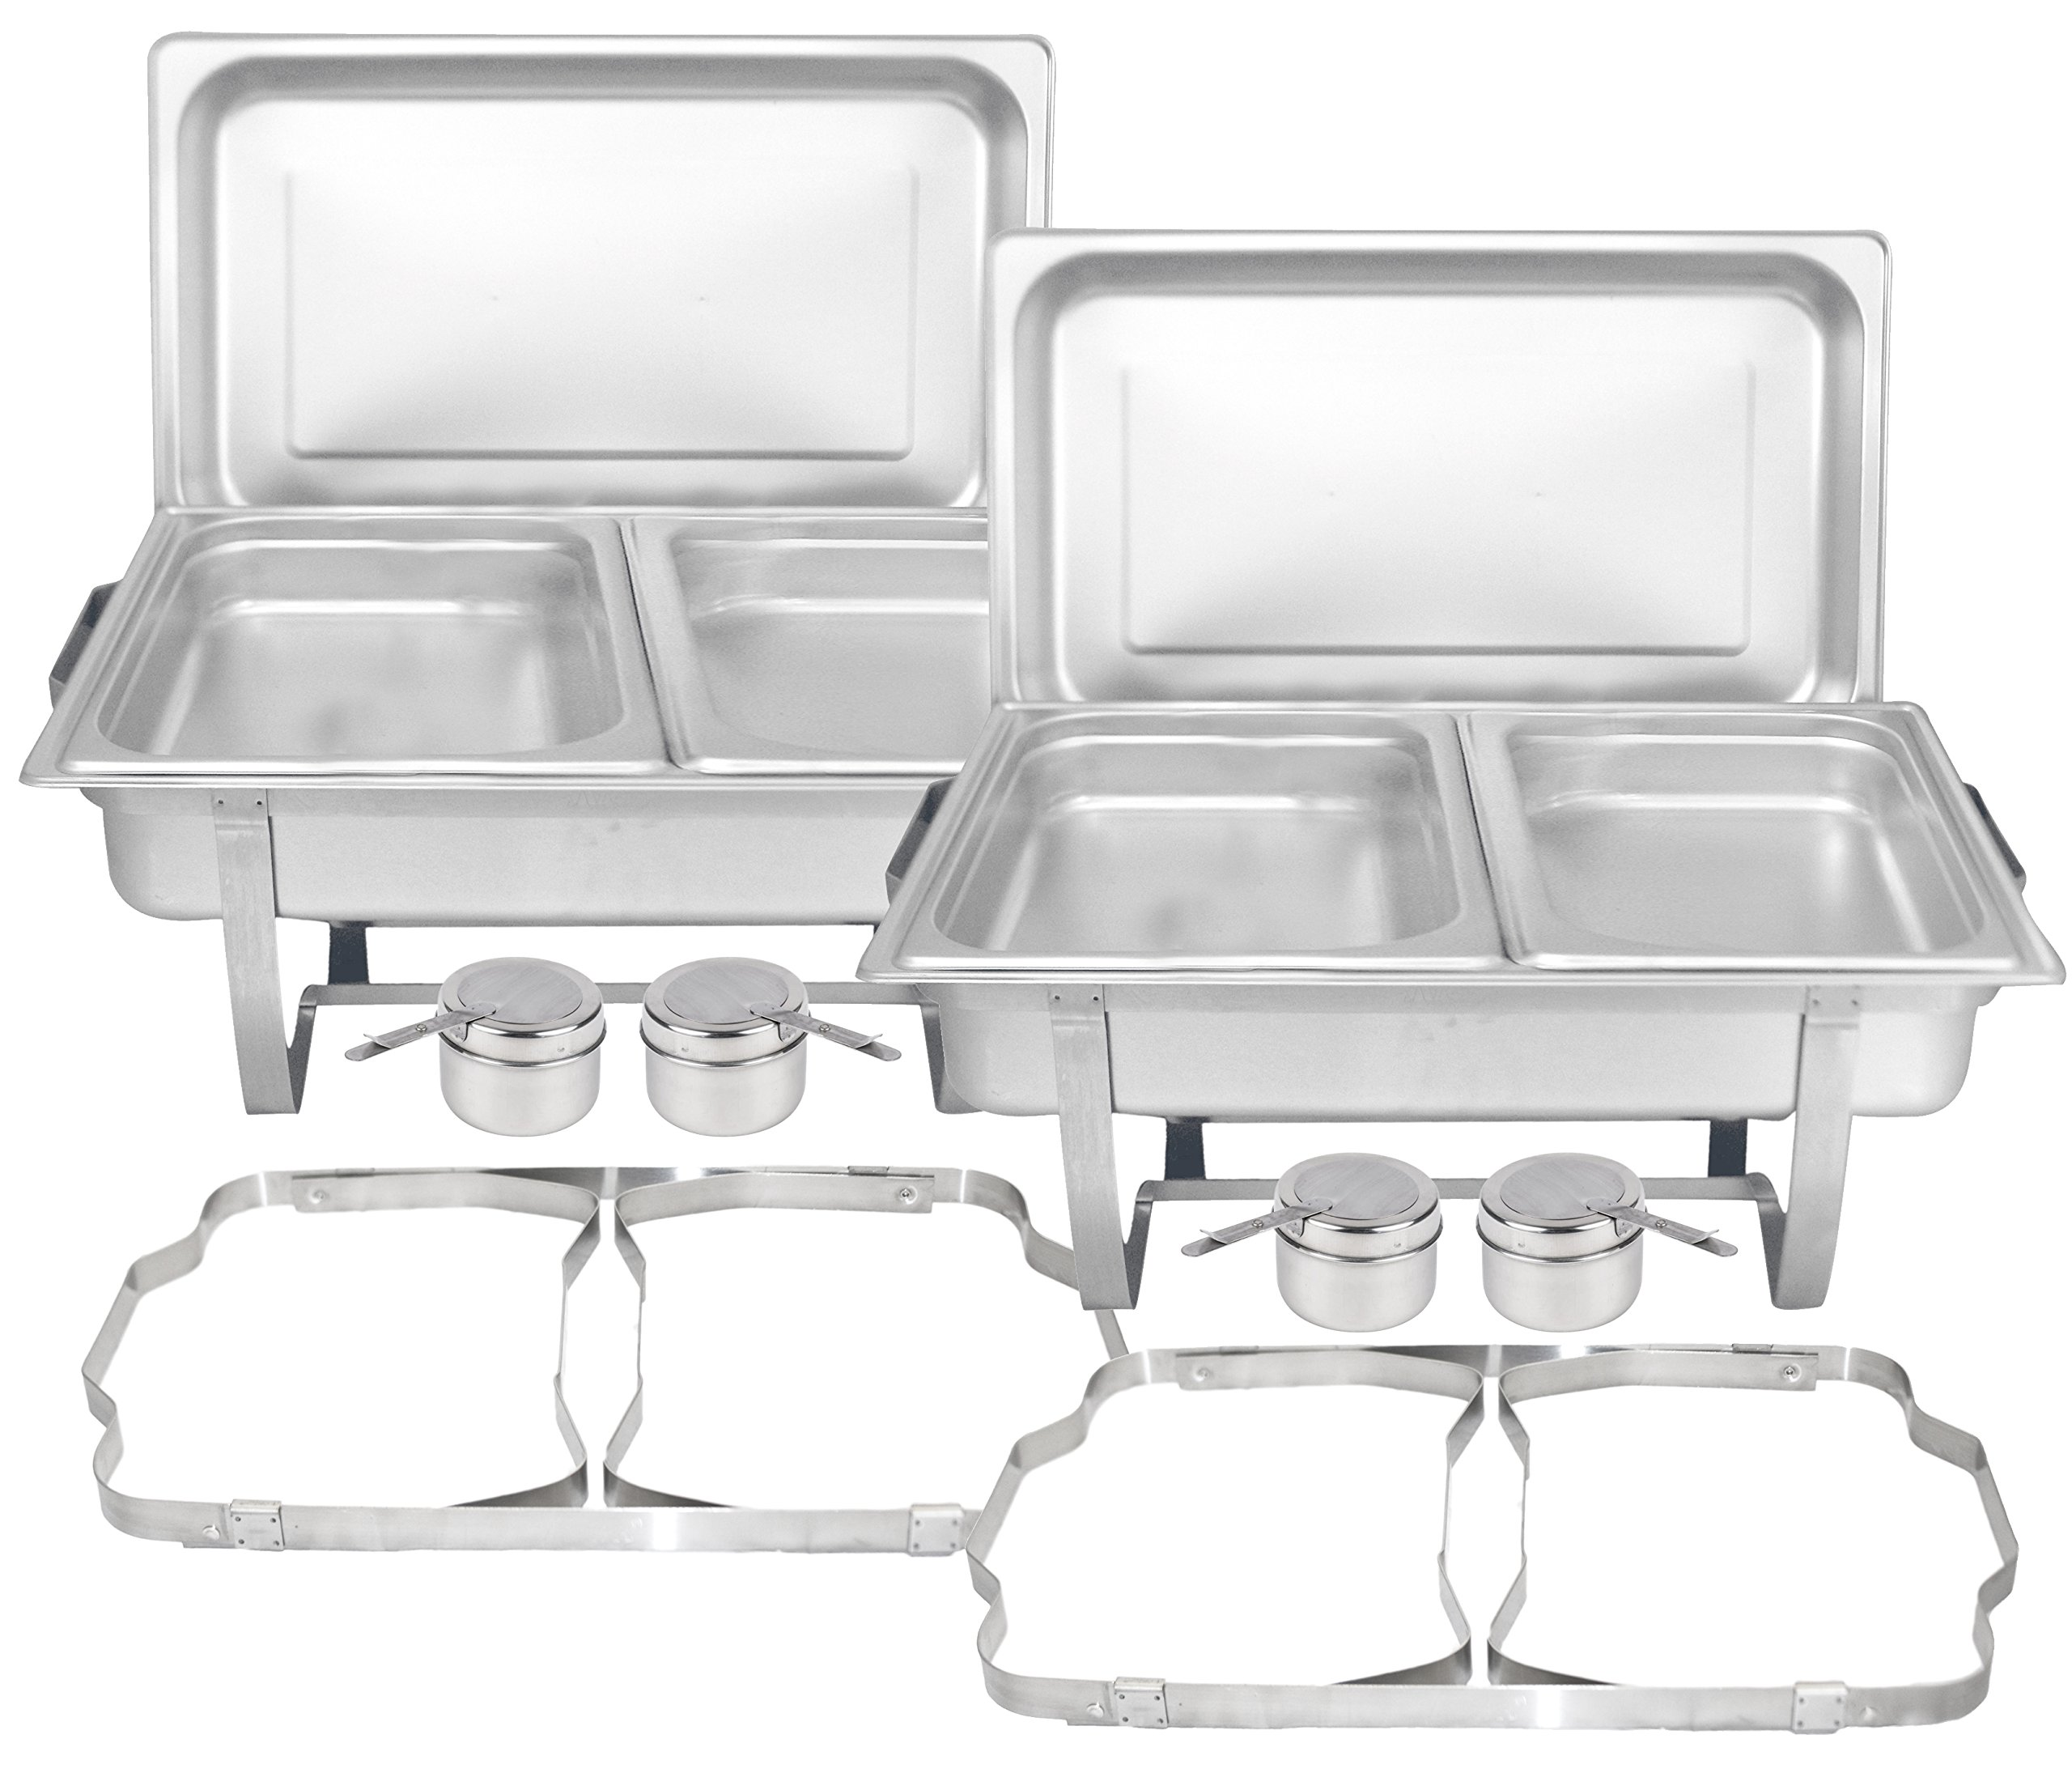 Tiger Chef 8 Quart Full Size Stainless Steel Chafer with Folding Frame and Cool-Touch Plastic on Top (2, Full Size with 1/2 Inserts)